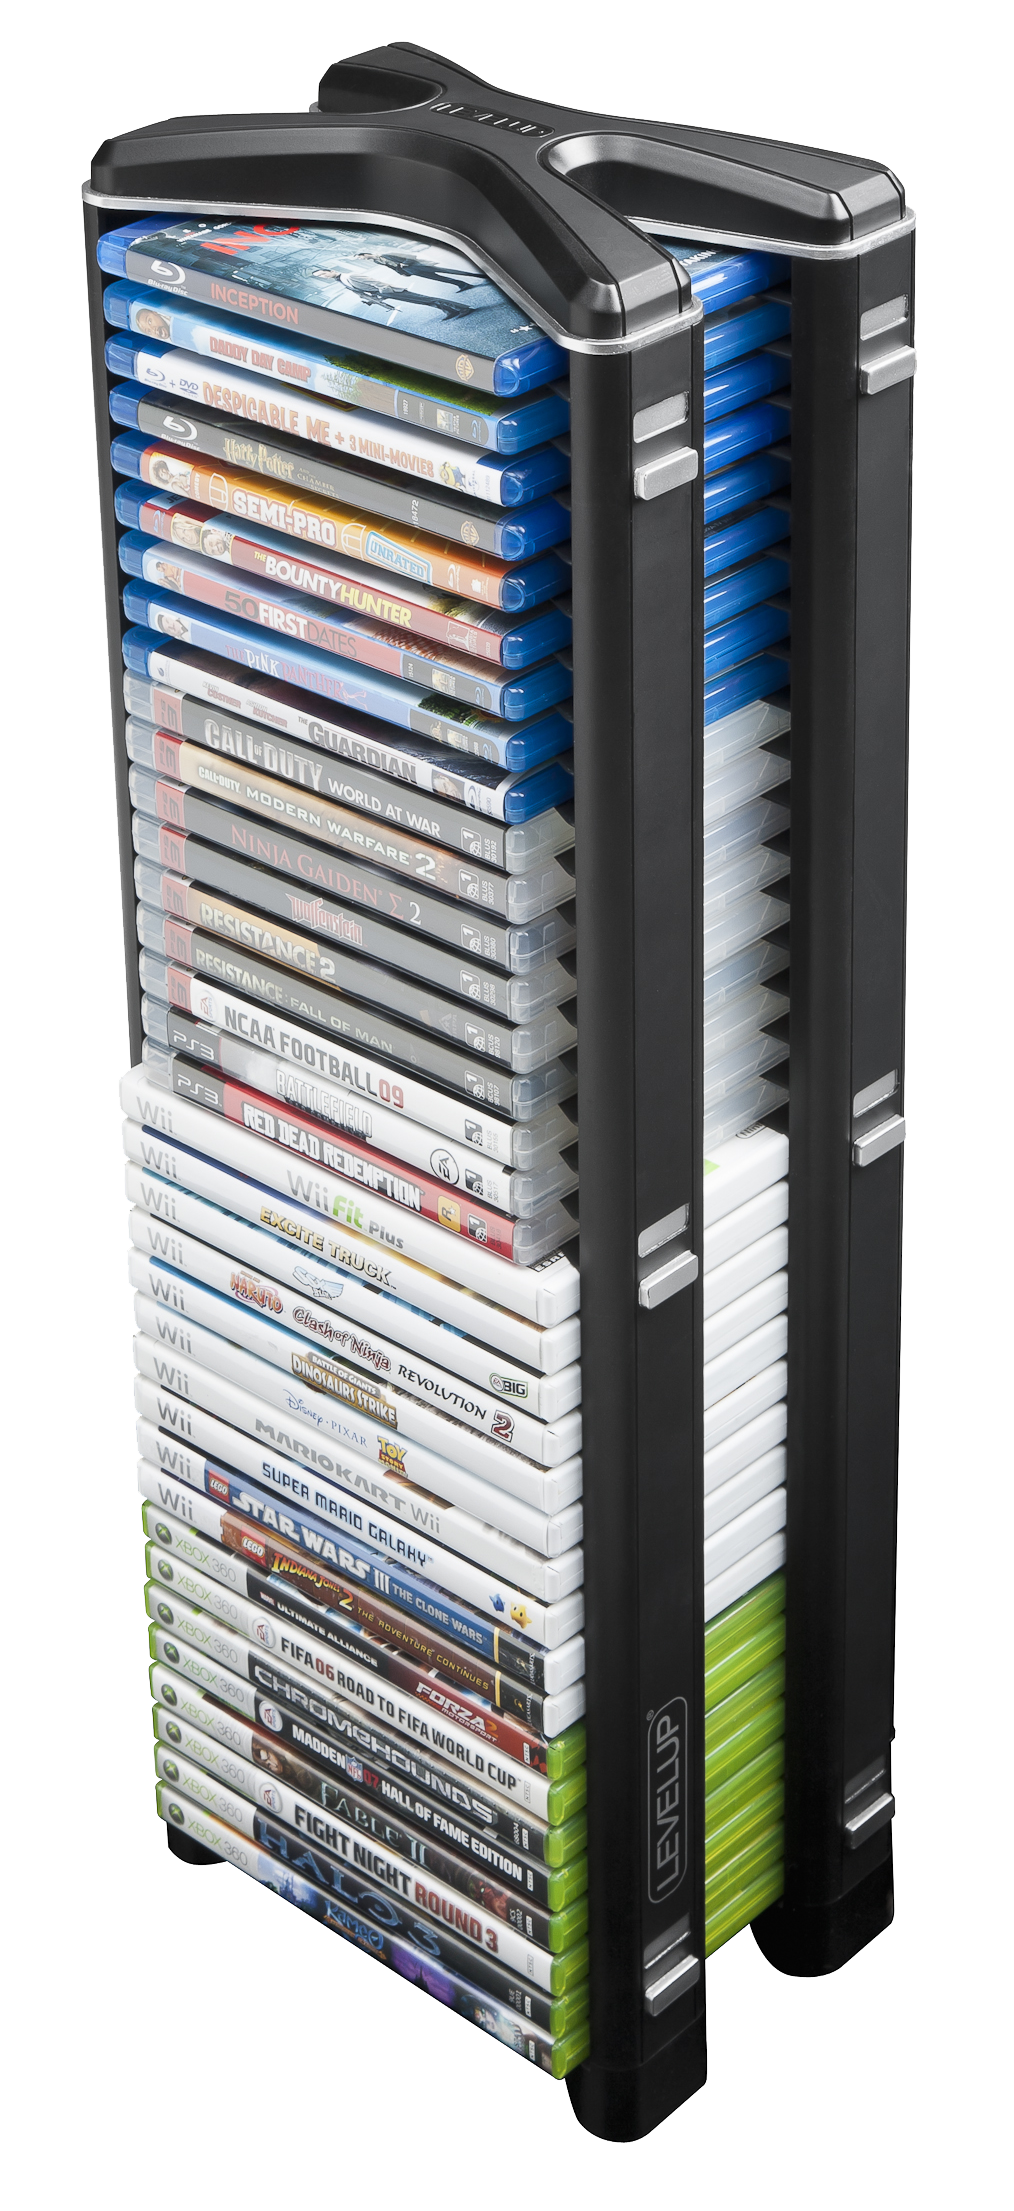 Universal Stealth Game Storage Tower   LevelUP's Great Gift